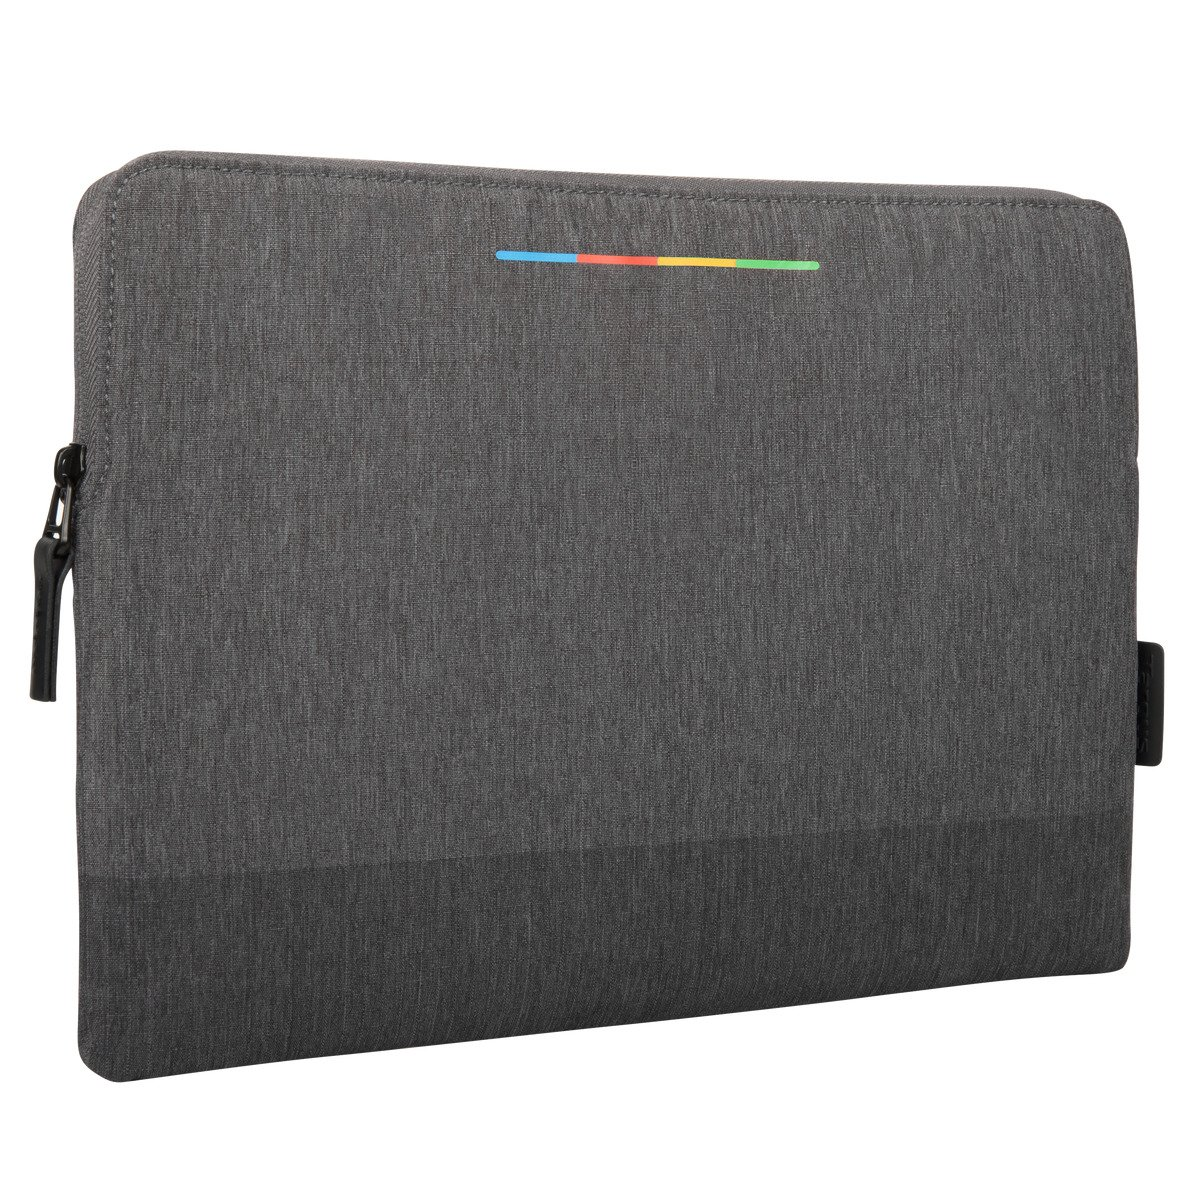 Chromebook Pixel laptop sleeve